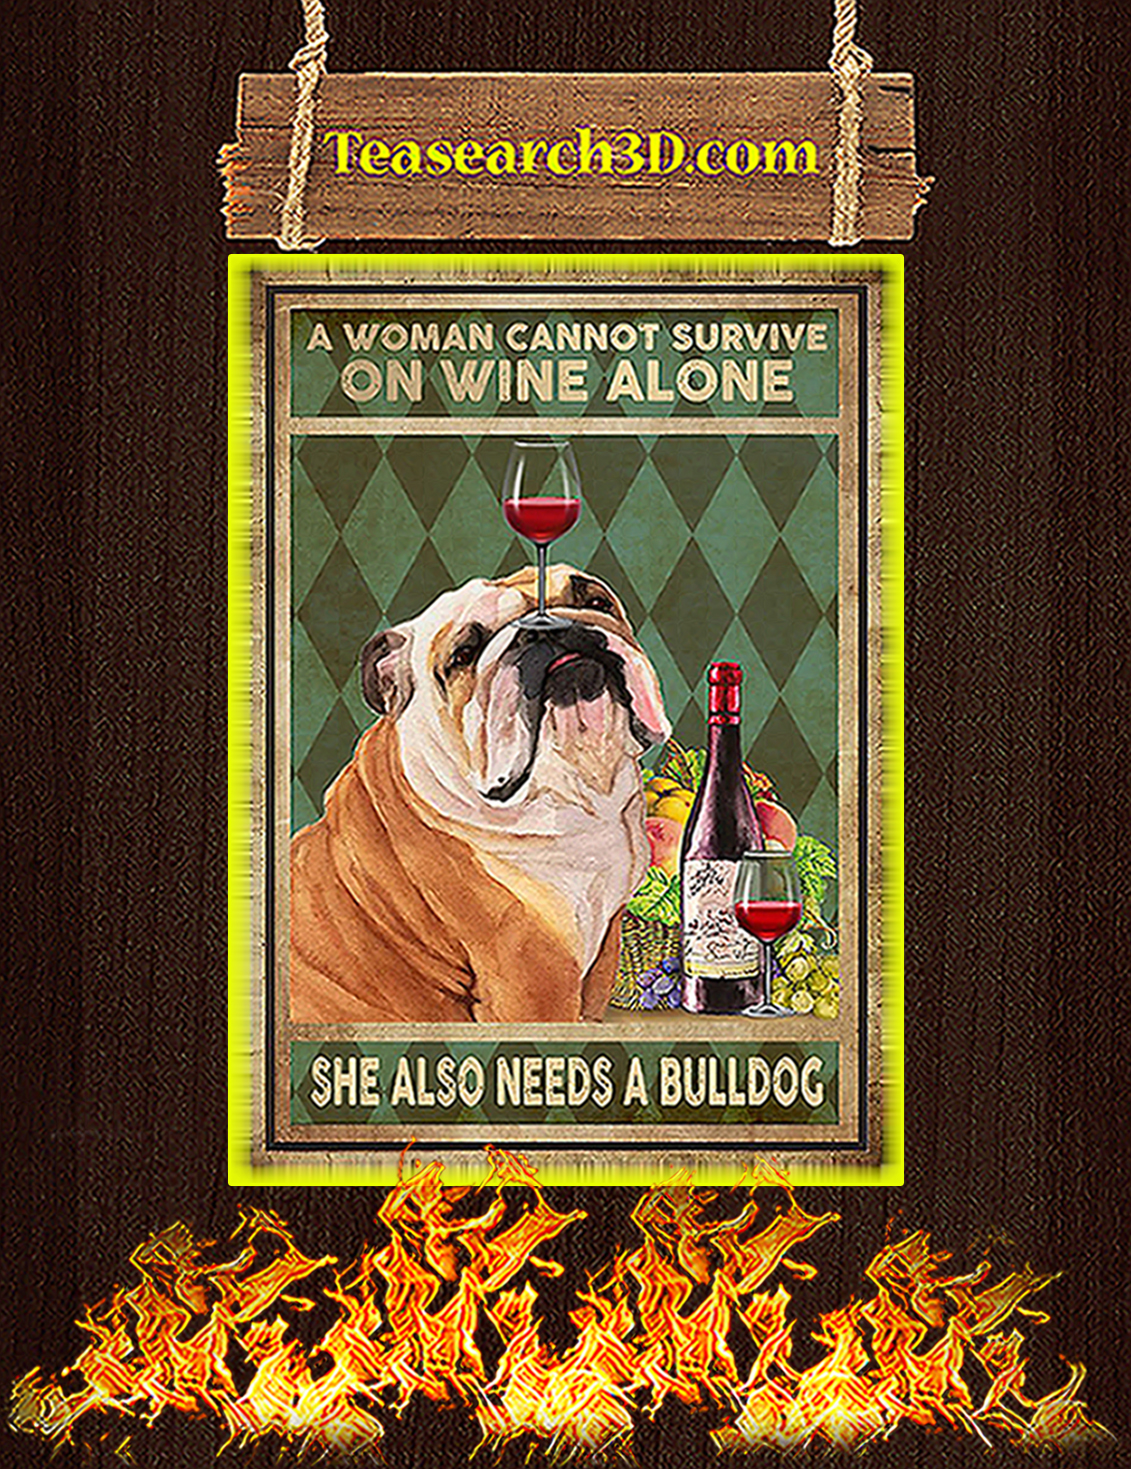 A woman cannot survive on wine alone she also needs a bulldog poster A3